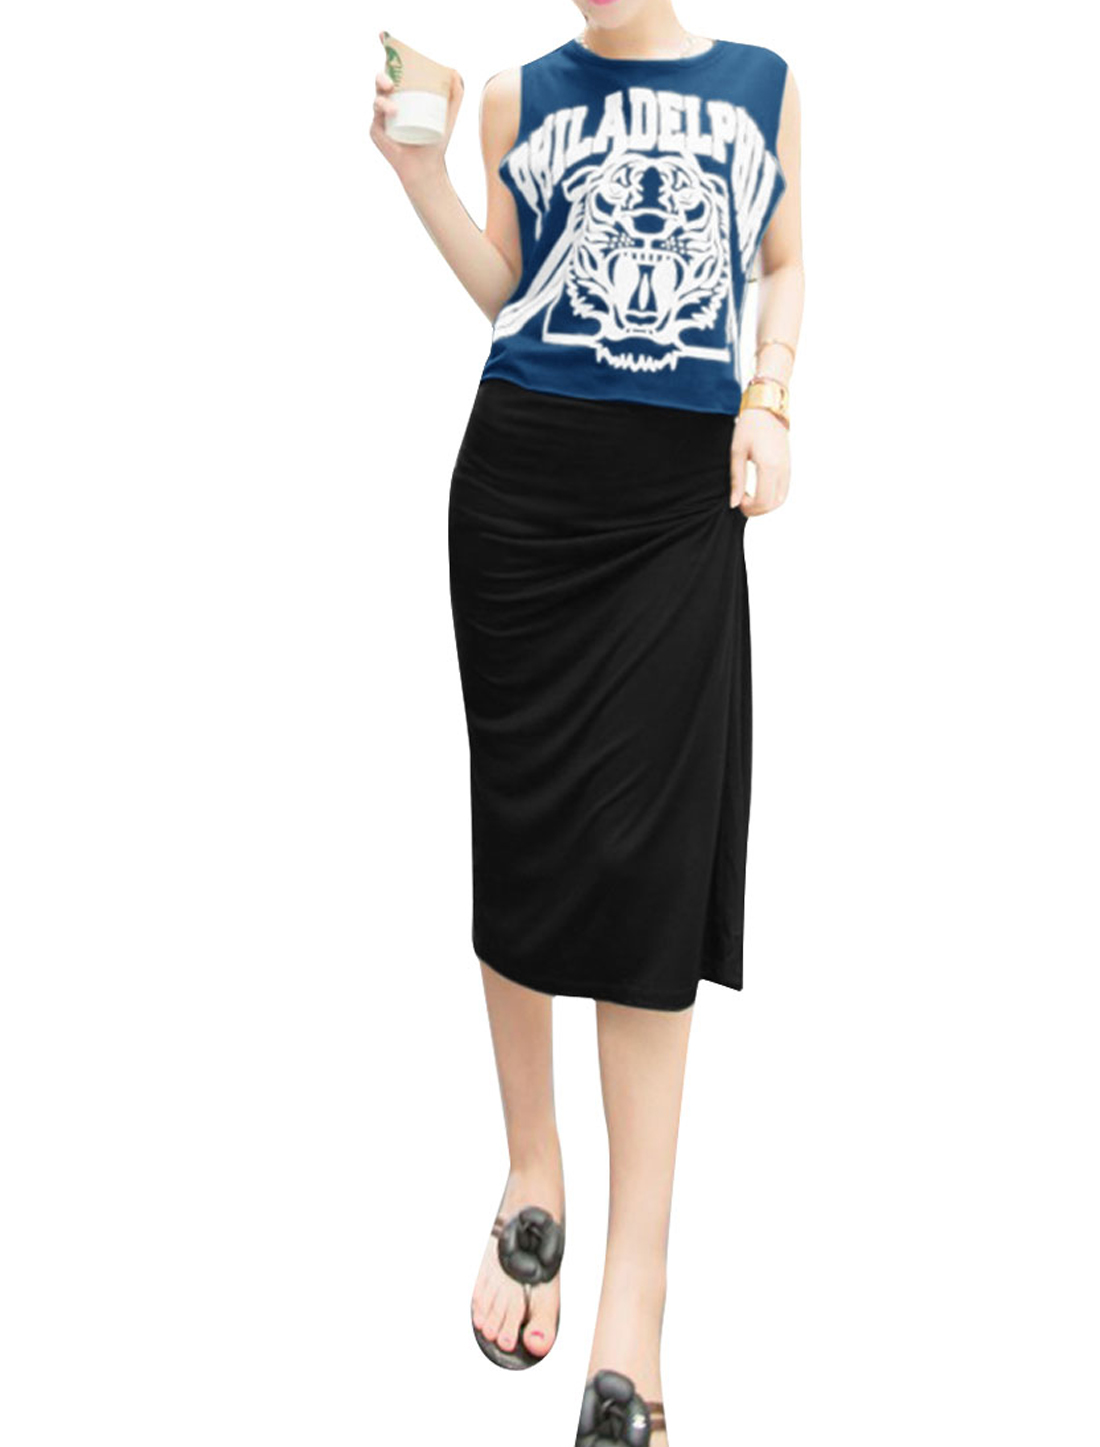 Women Letters Pattern Top w Round Neck Sleeveless Dress Navy Blue Black XS